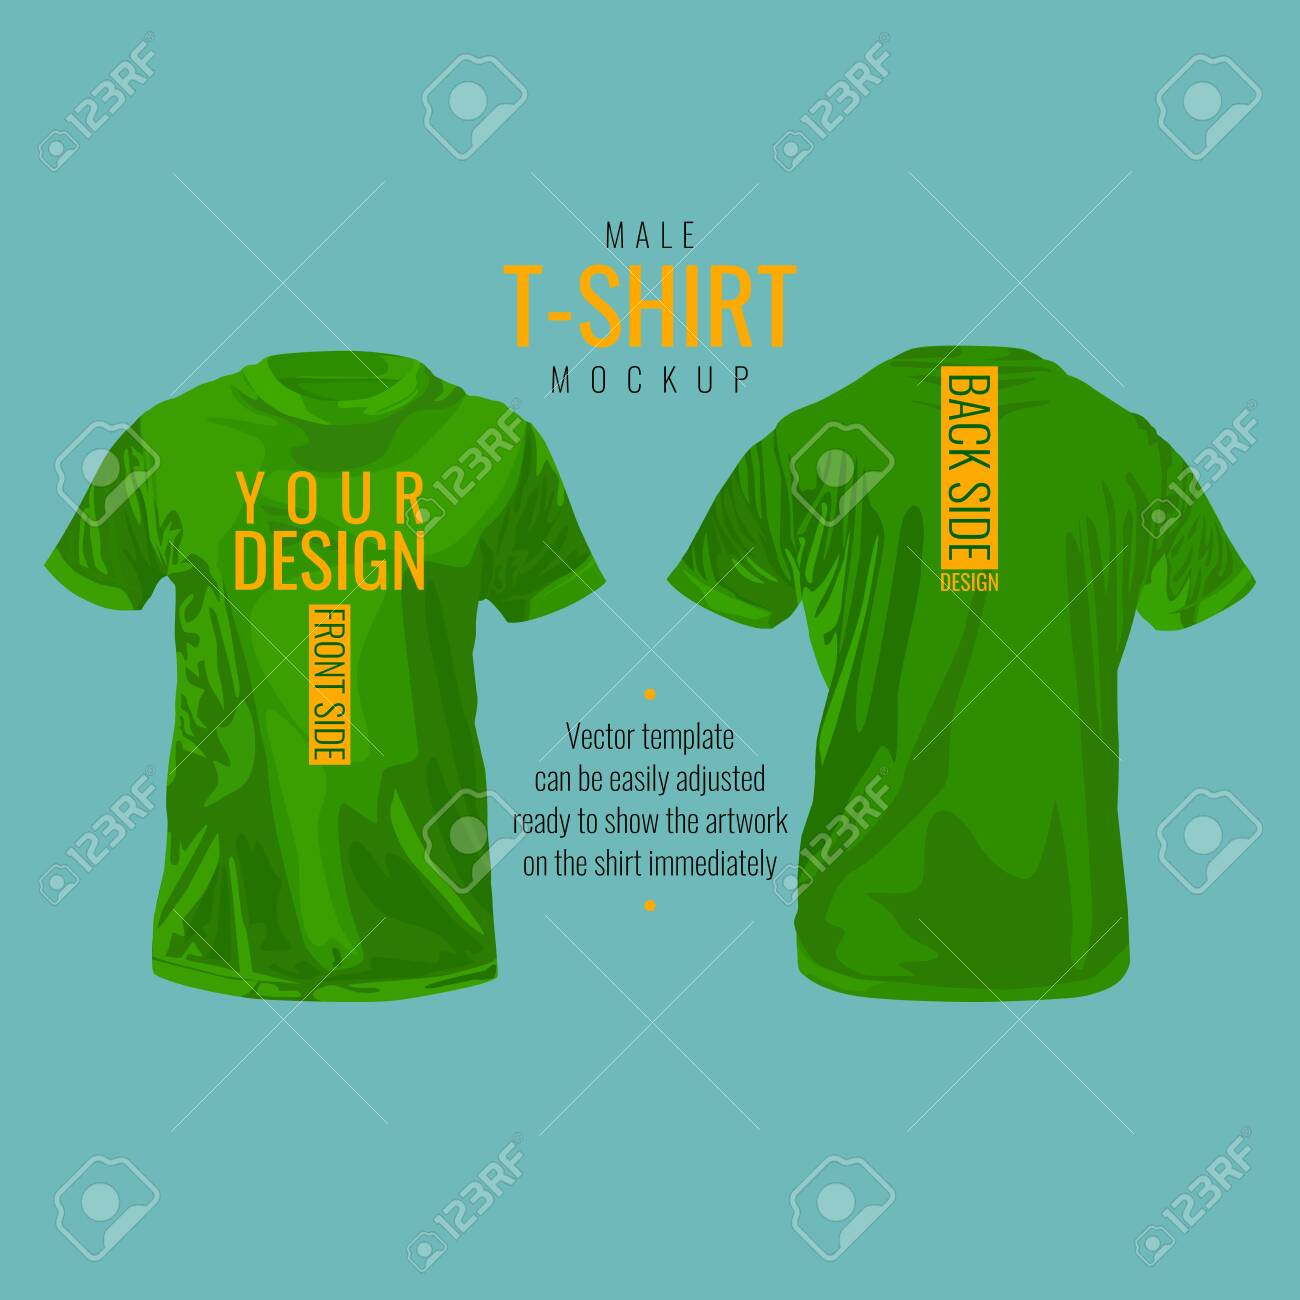 Male T-shirt template and mockup, vector illustration design. - 154335187